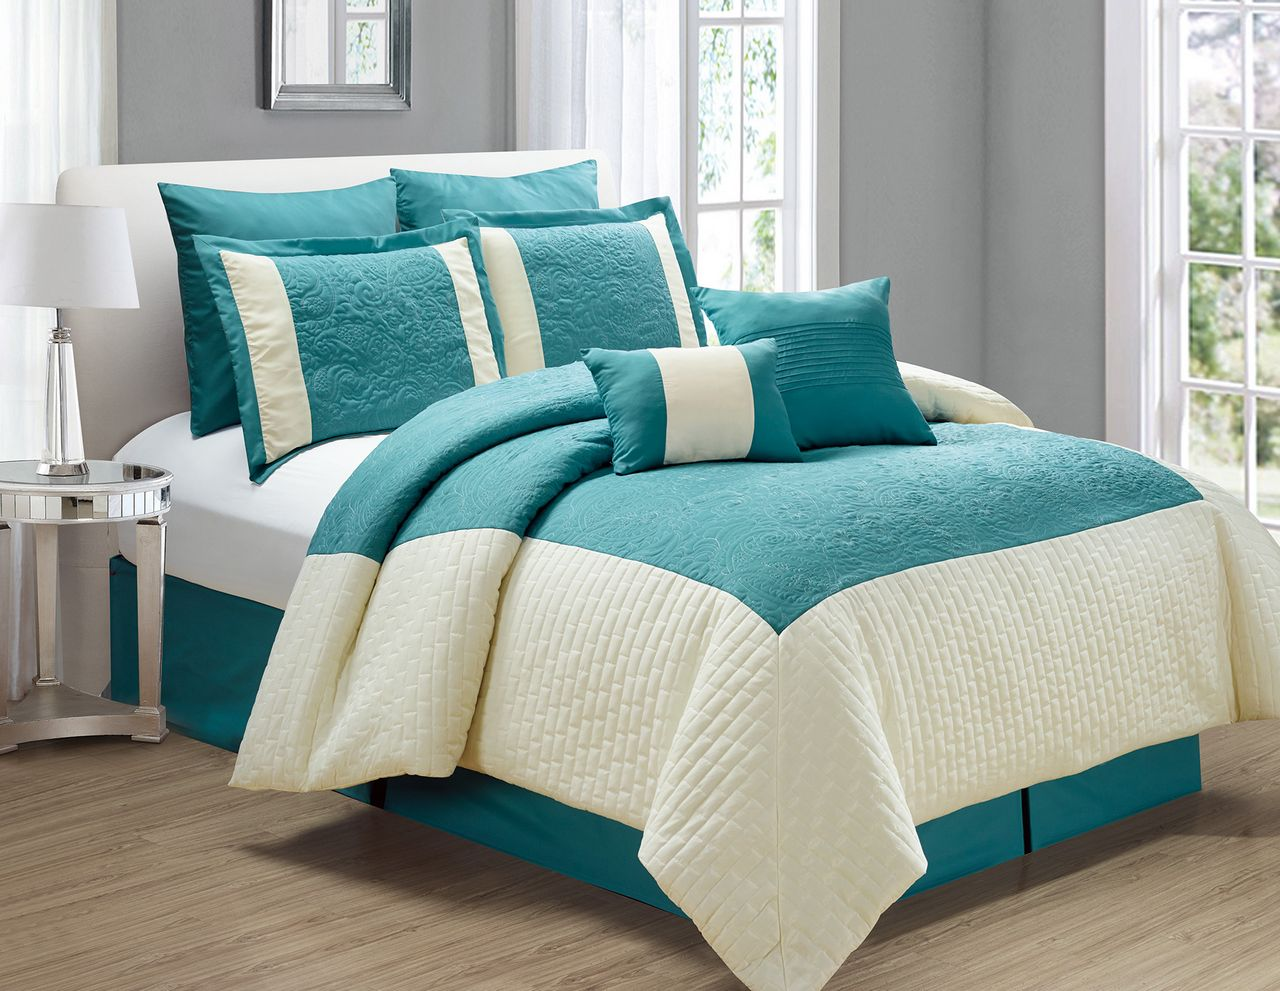 12 piece poloma teal ivory bed in a bag set. Black Bedroom Furniture Sets. Home Design Ideas